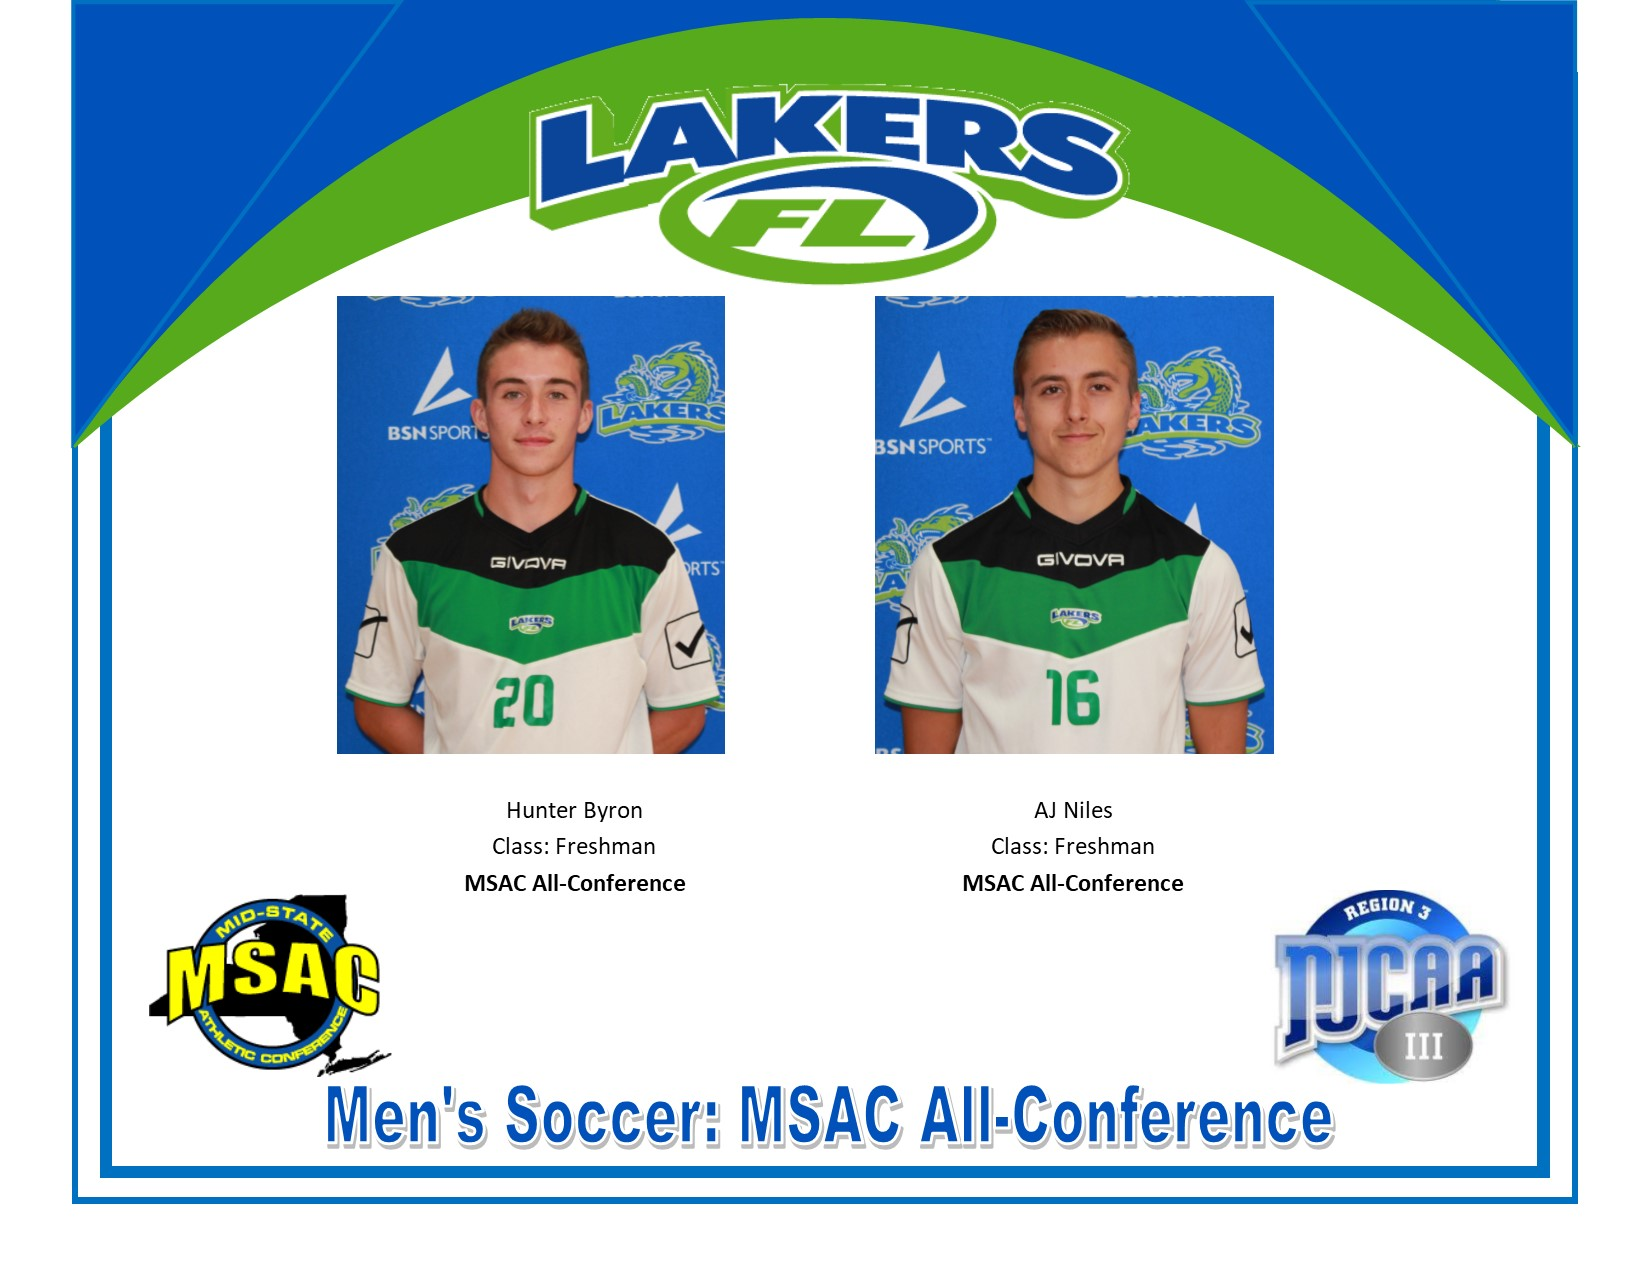 Two Lakers Named to 2019 Men's Soccer MSAC All-Conference Team